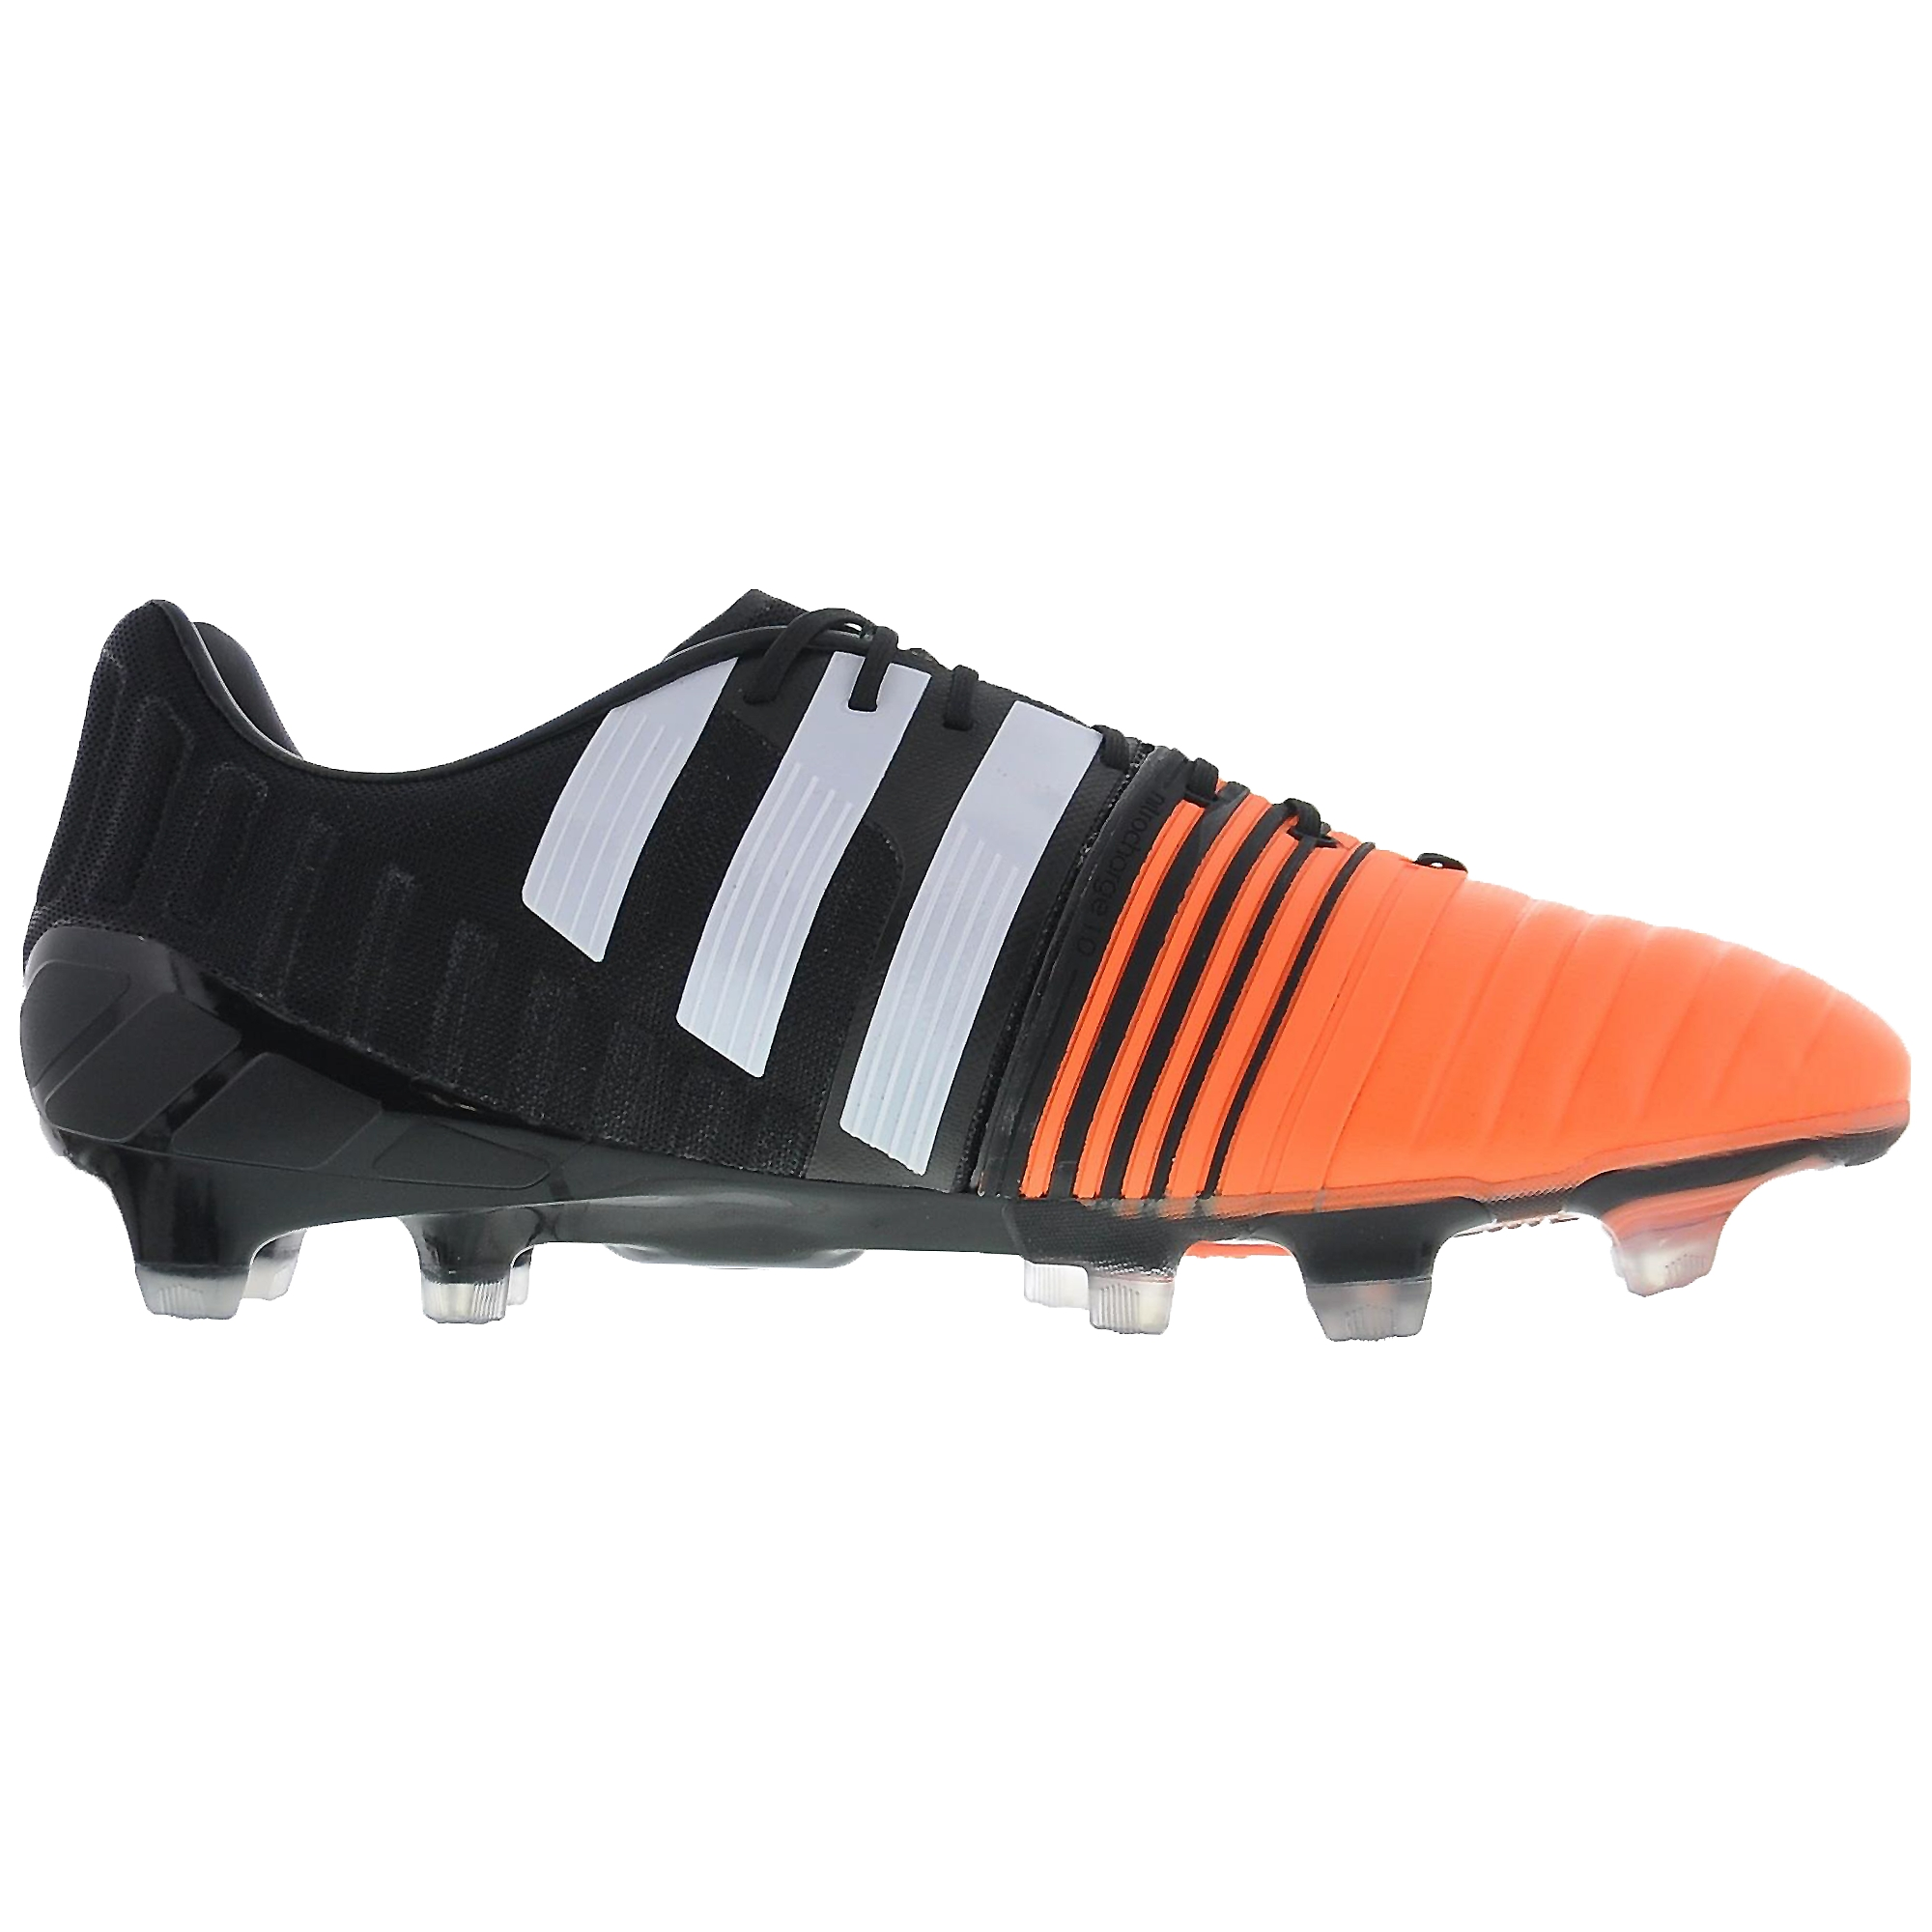 adidas nitrocharge 1 0 ss15 firm ground krampon m19051. Black Bedroom Furniture Sets. Home Design Ideas